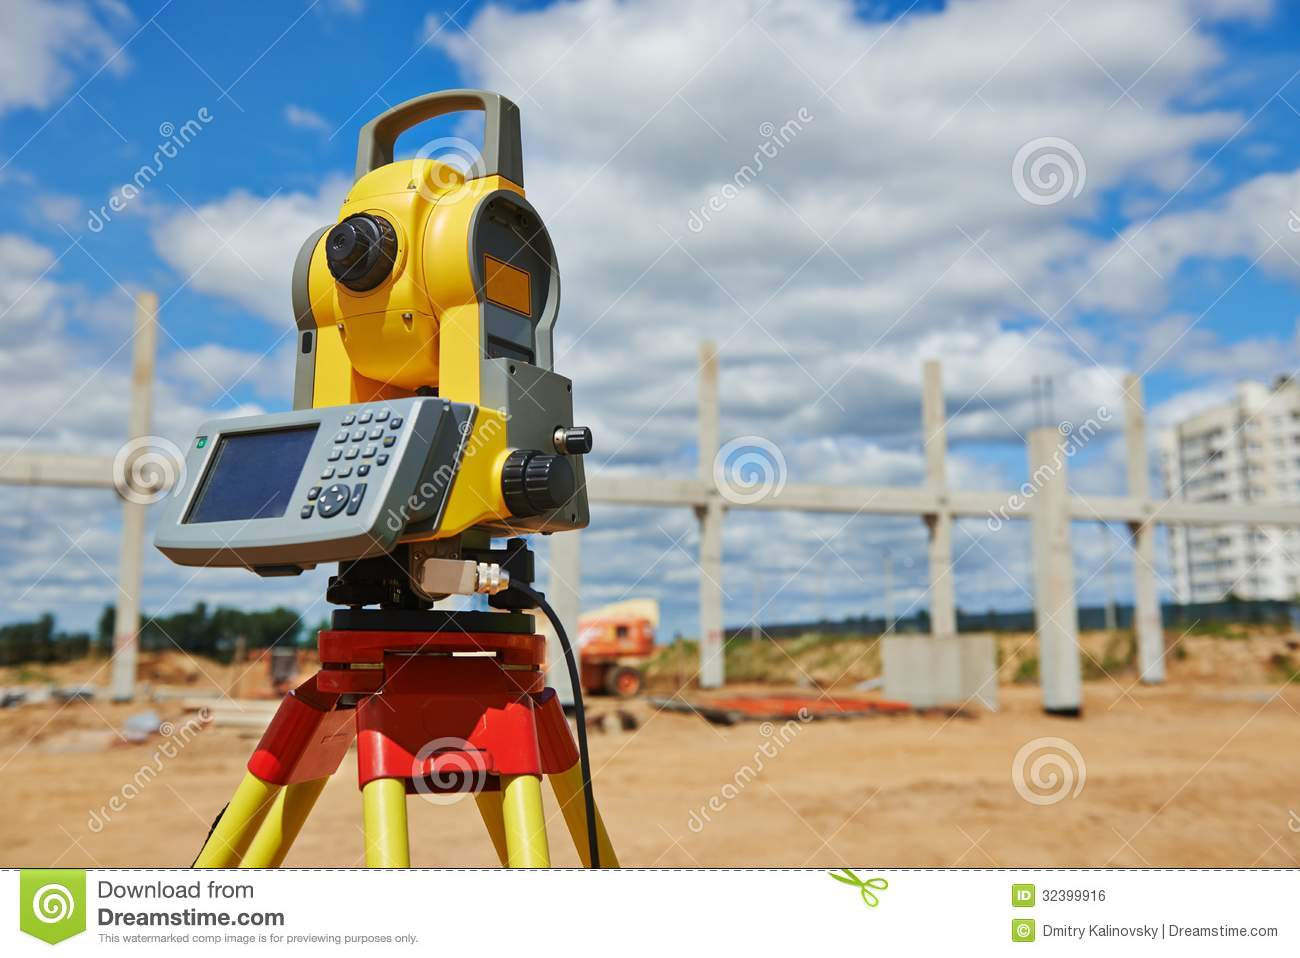 how to find a surveyor